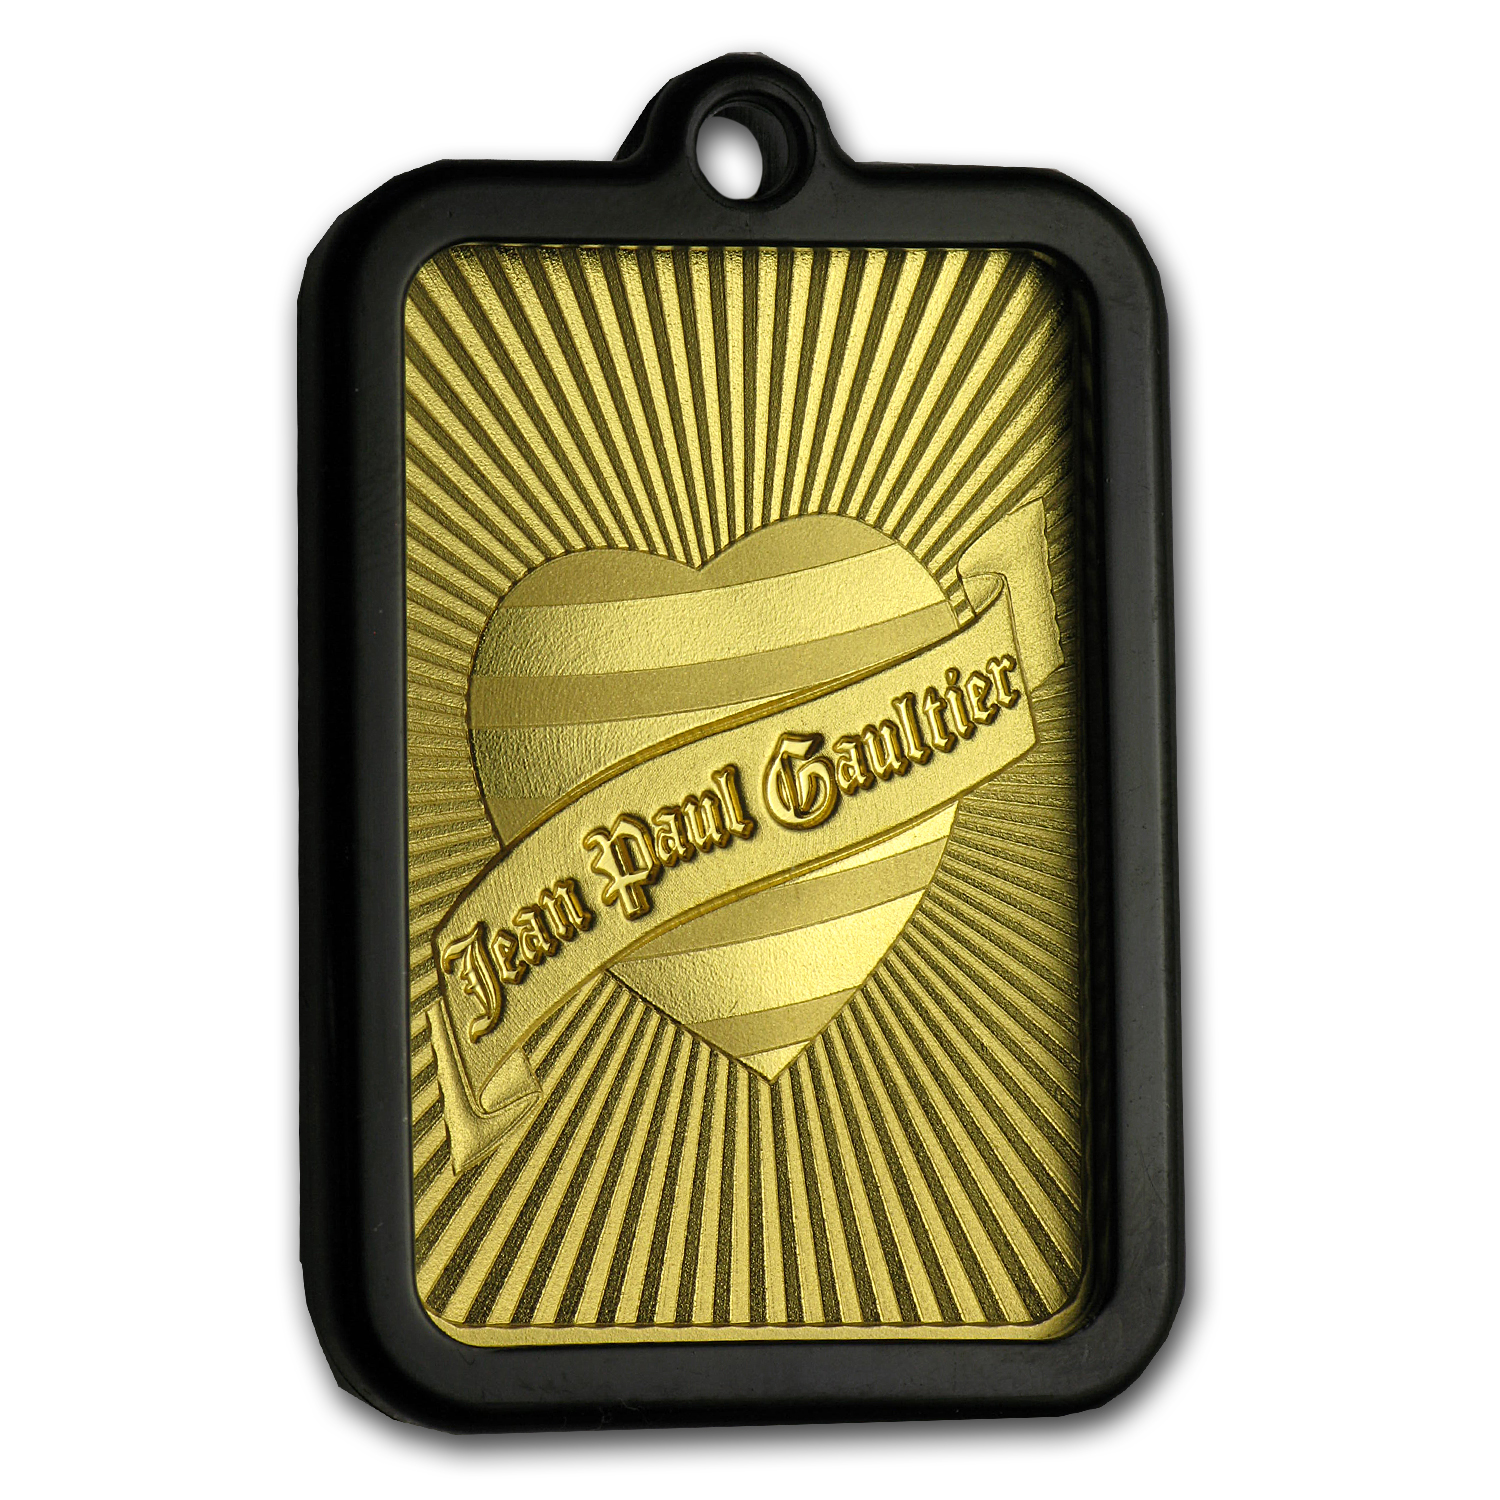 1 oz Gold Bar - Jean Paul Gaultier